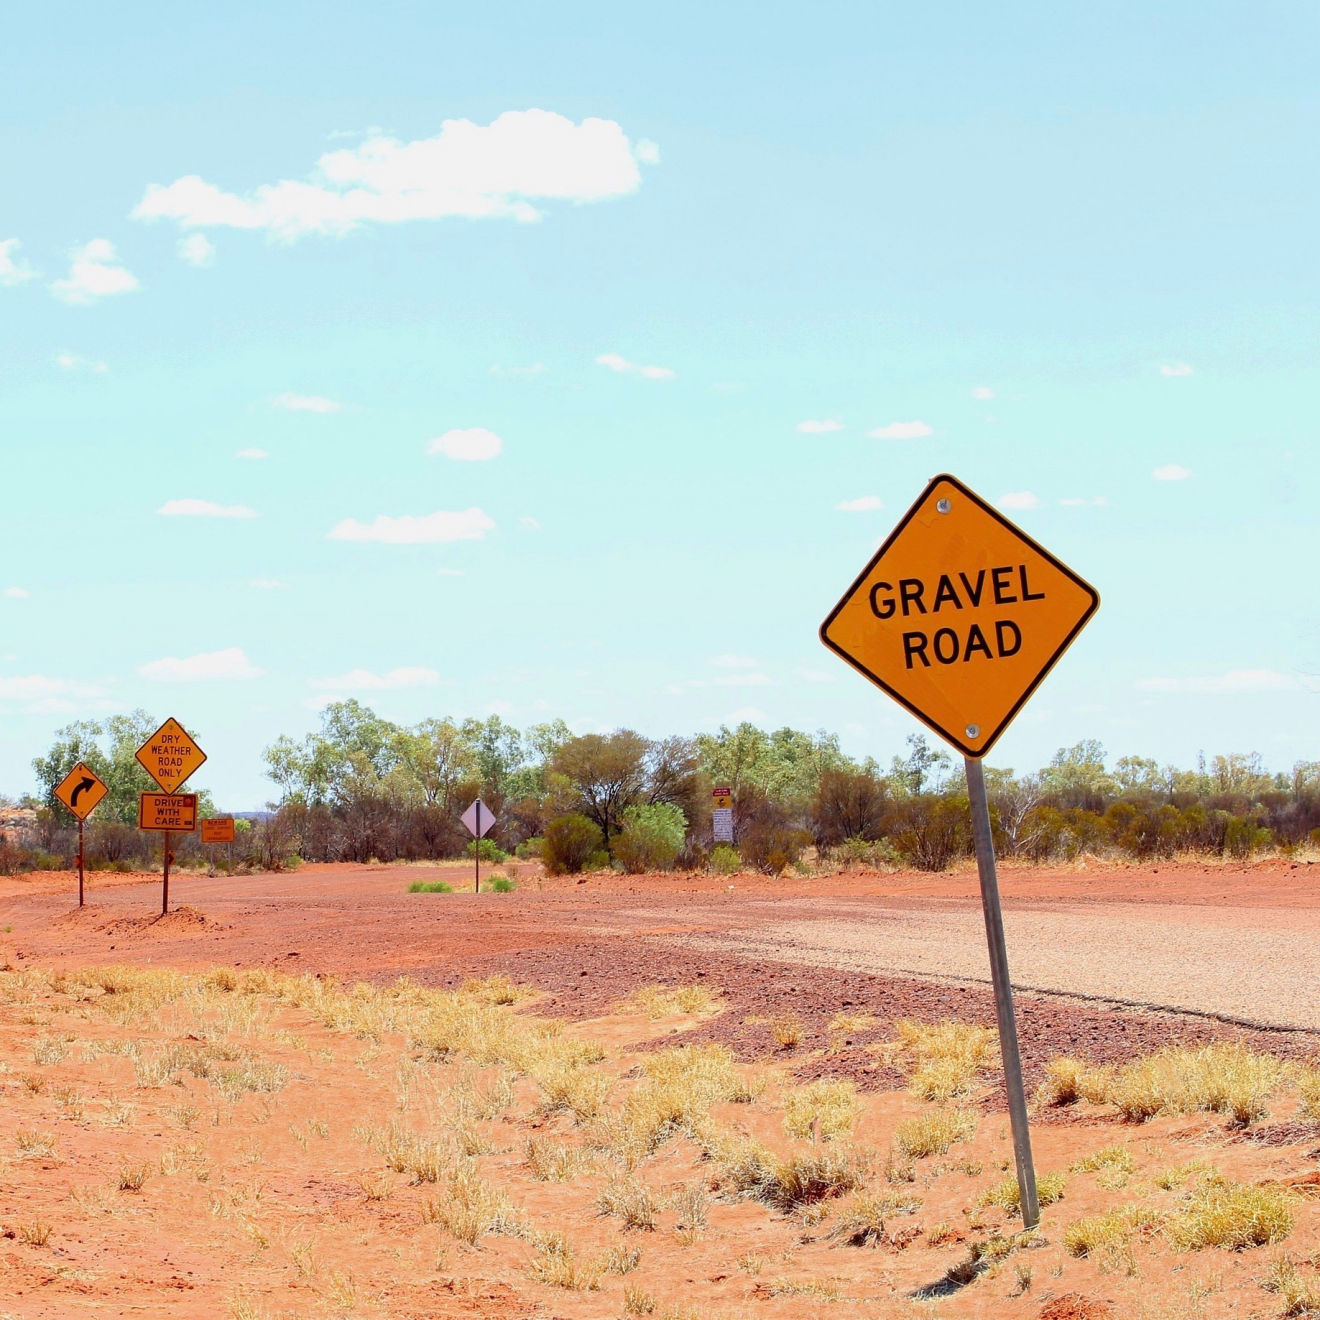 """Gravel Road"" sign on outback dirt road"